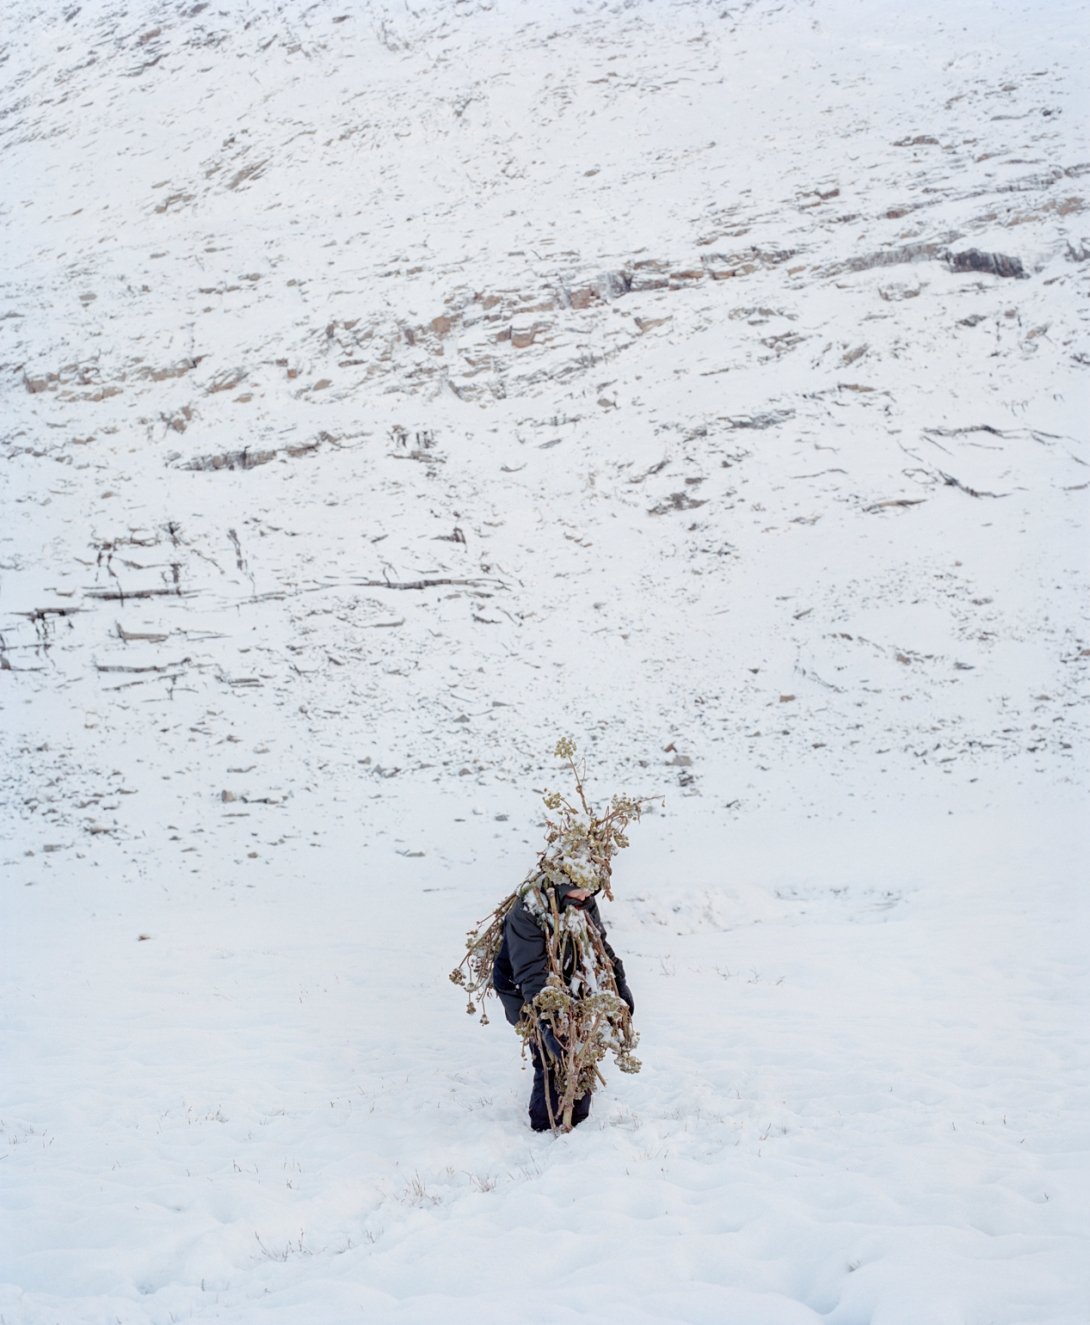 Eyes as Big as Plates # Amalie (Greenland 2015) © Karoline Hjorth & Riitta Ikonen